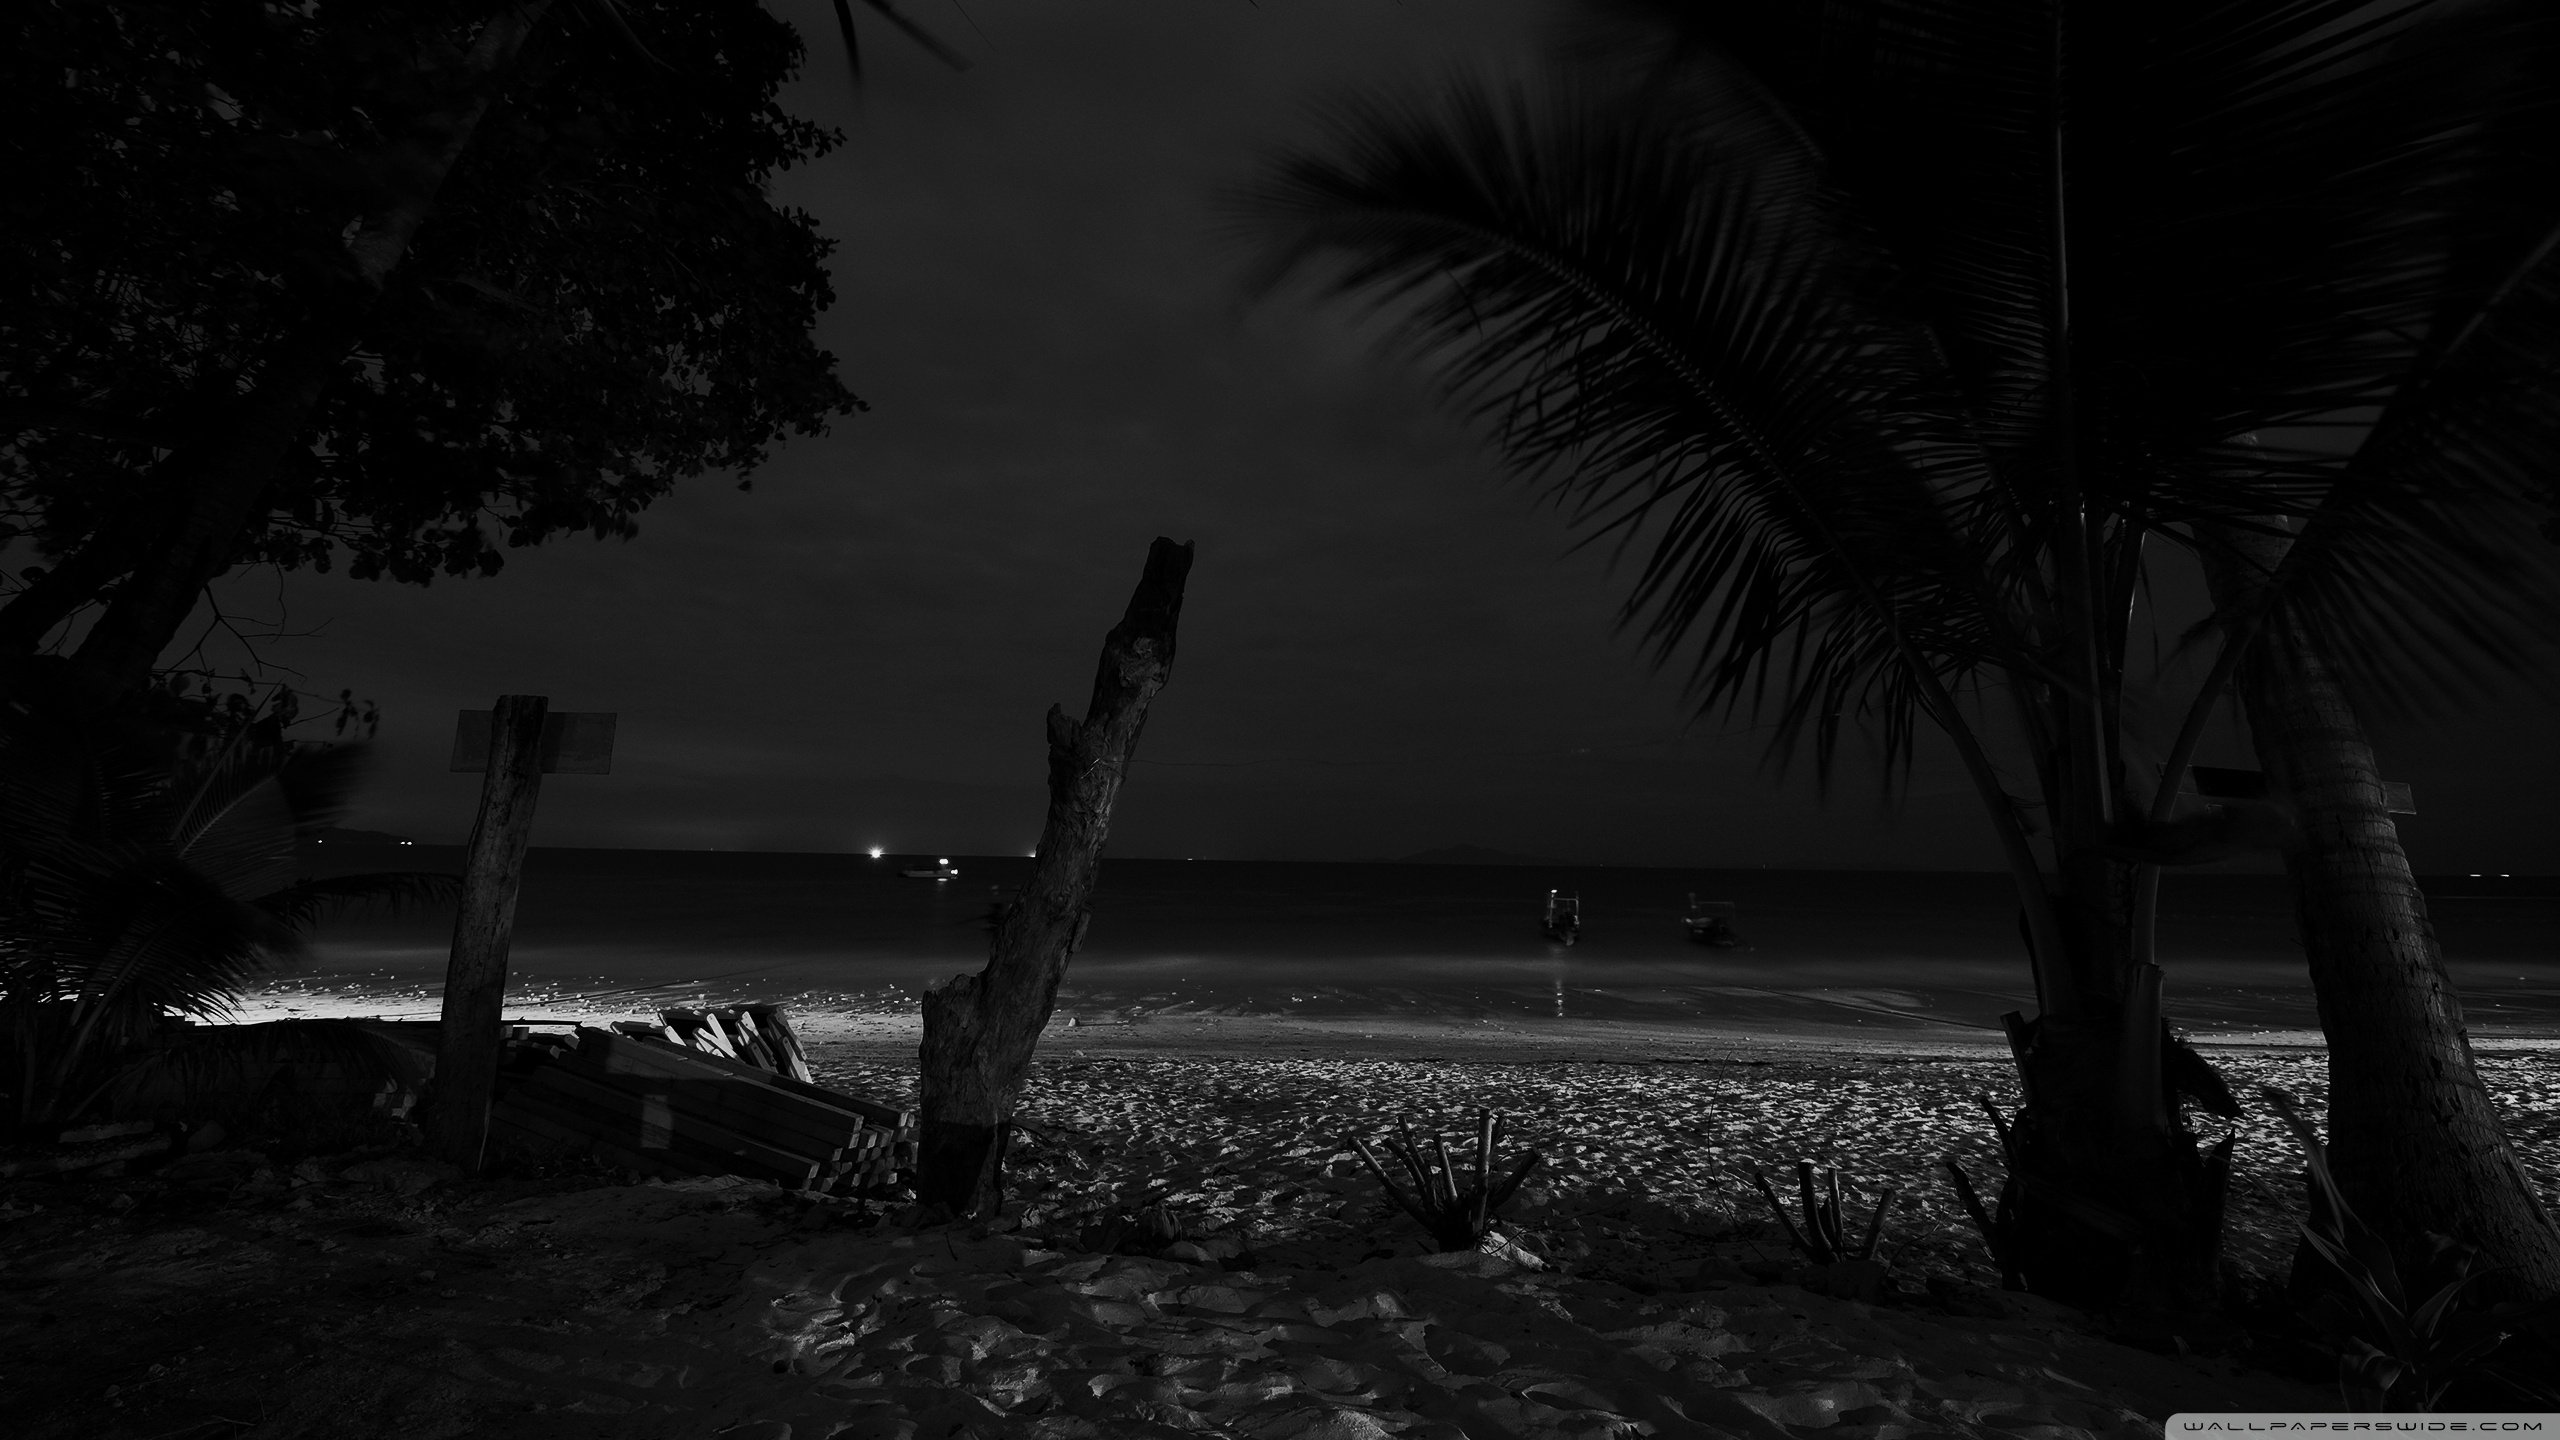 Beach At Night 2 Wallpaper 191 2560x1440 pixel Exotic Wallpaper 2560x1440